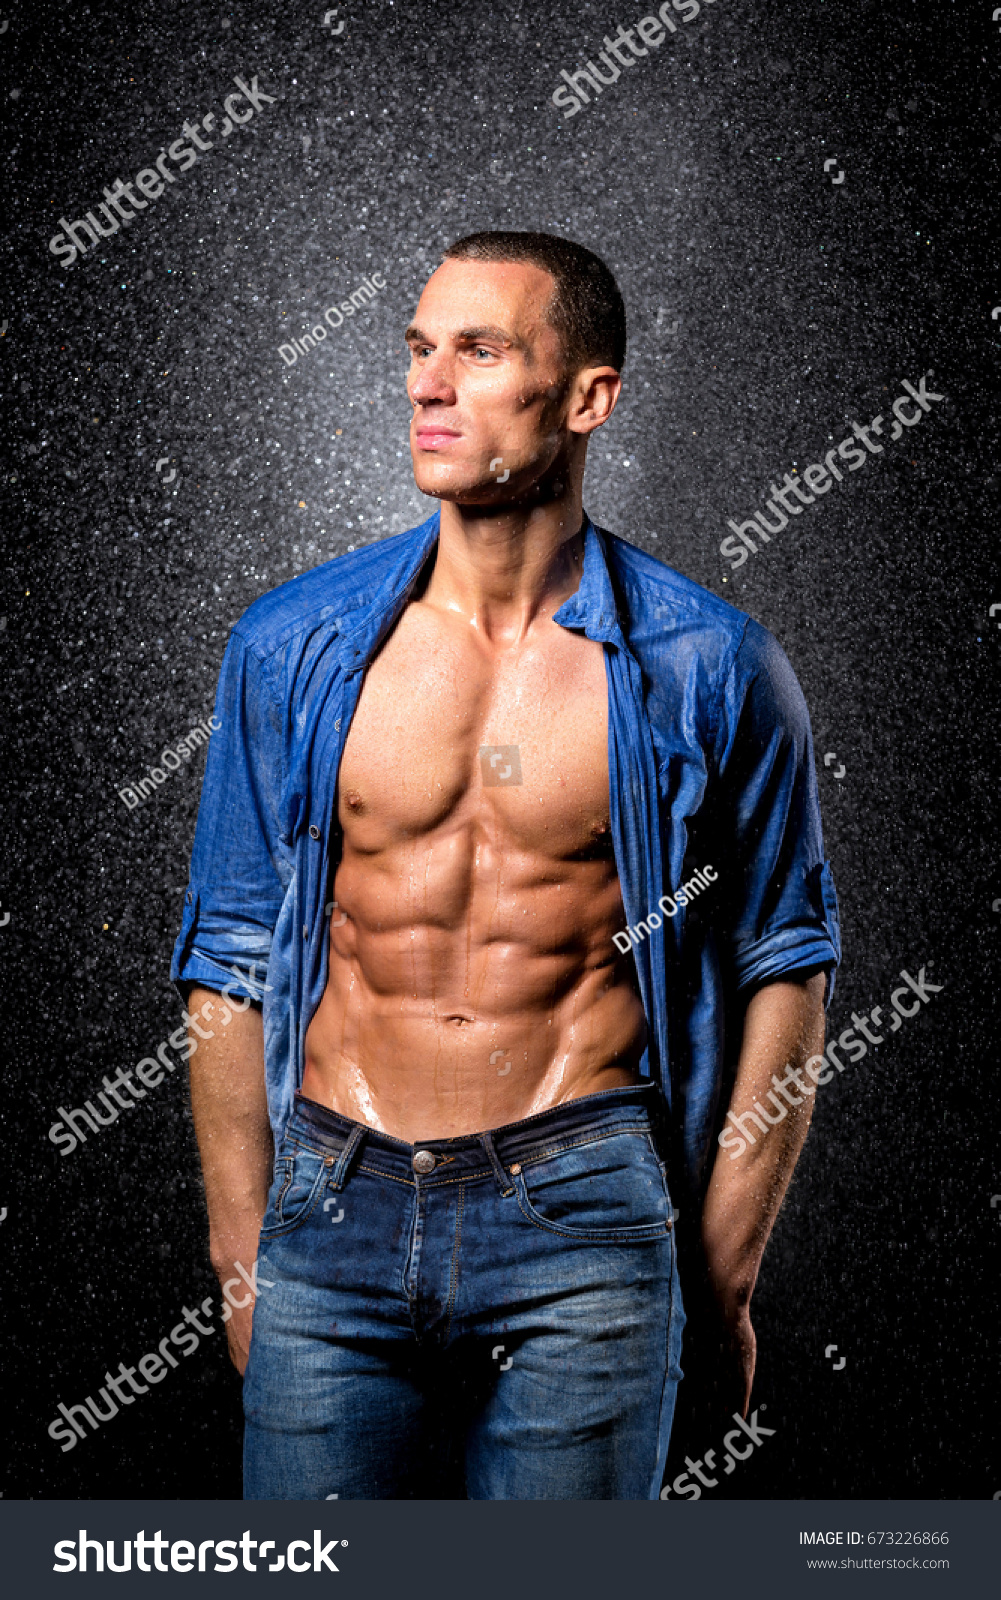 Wet male photos 100